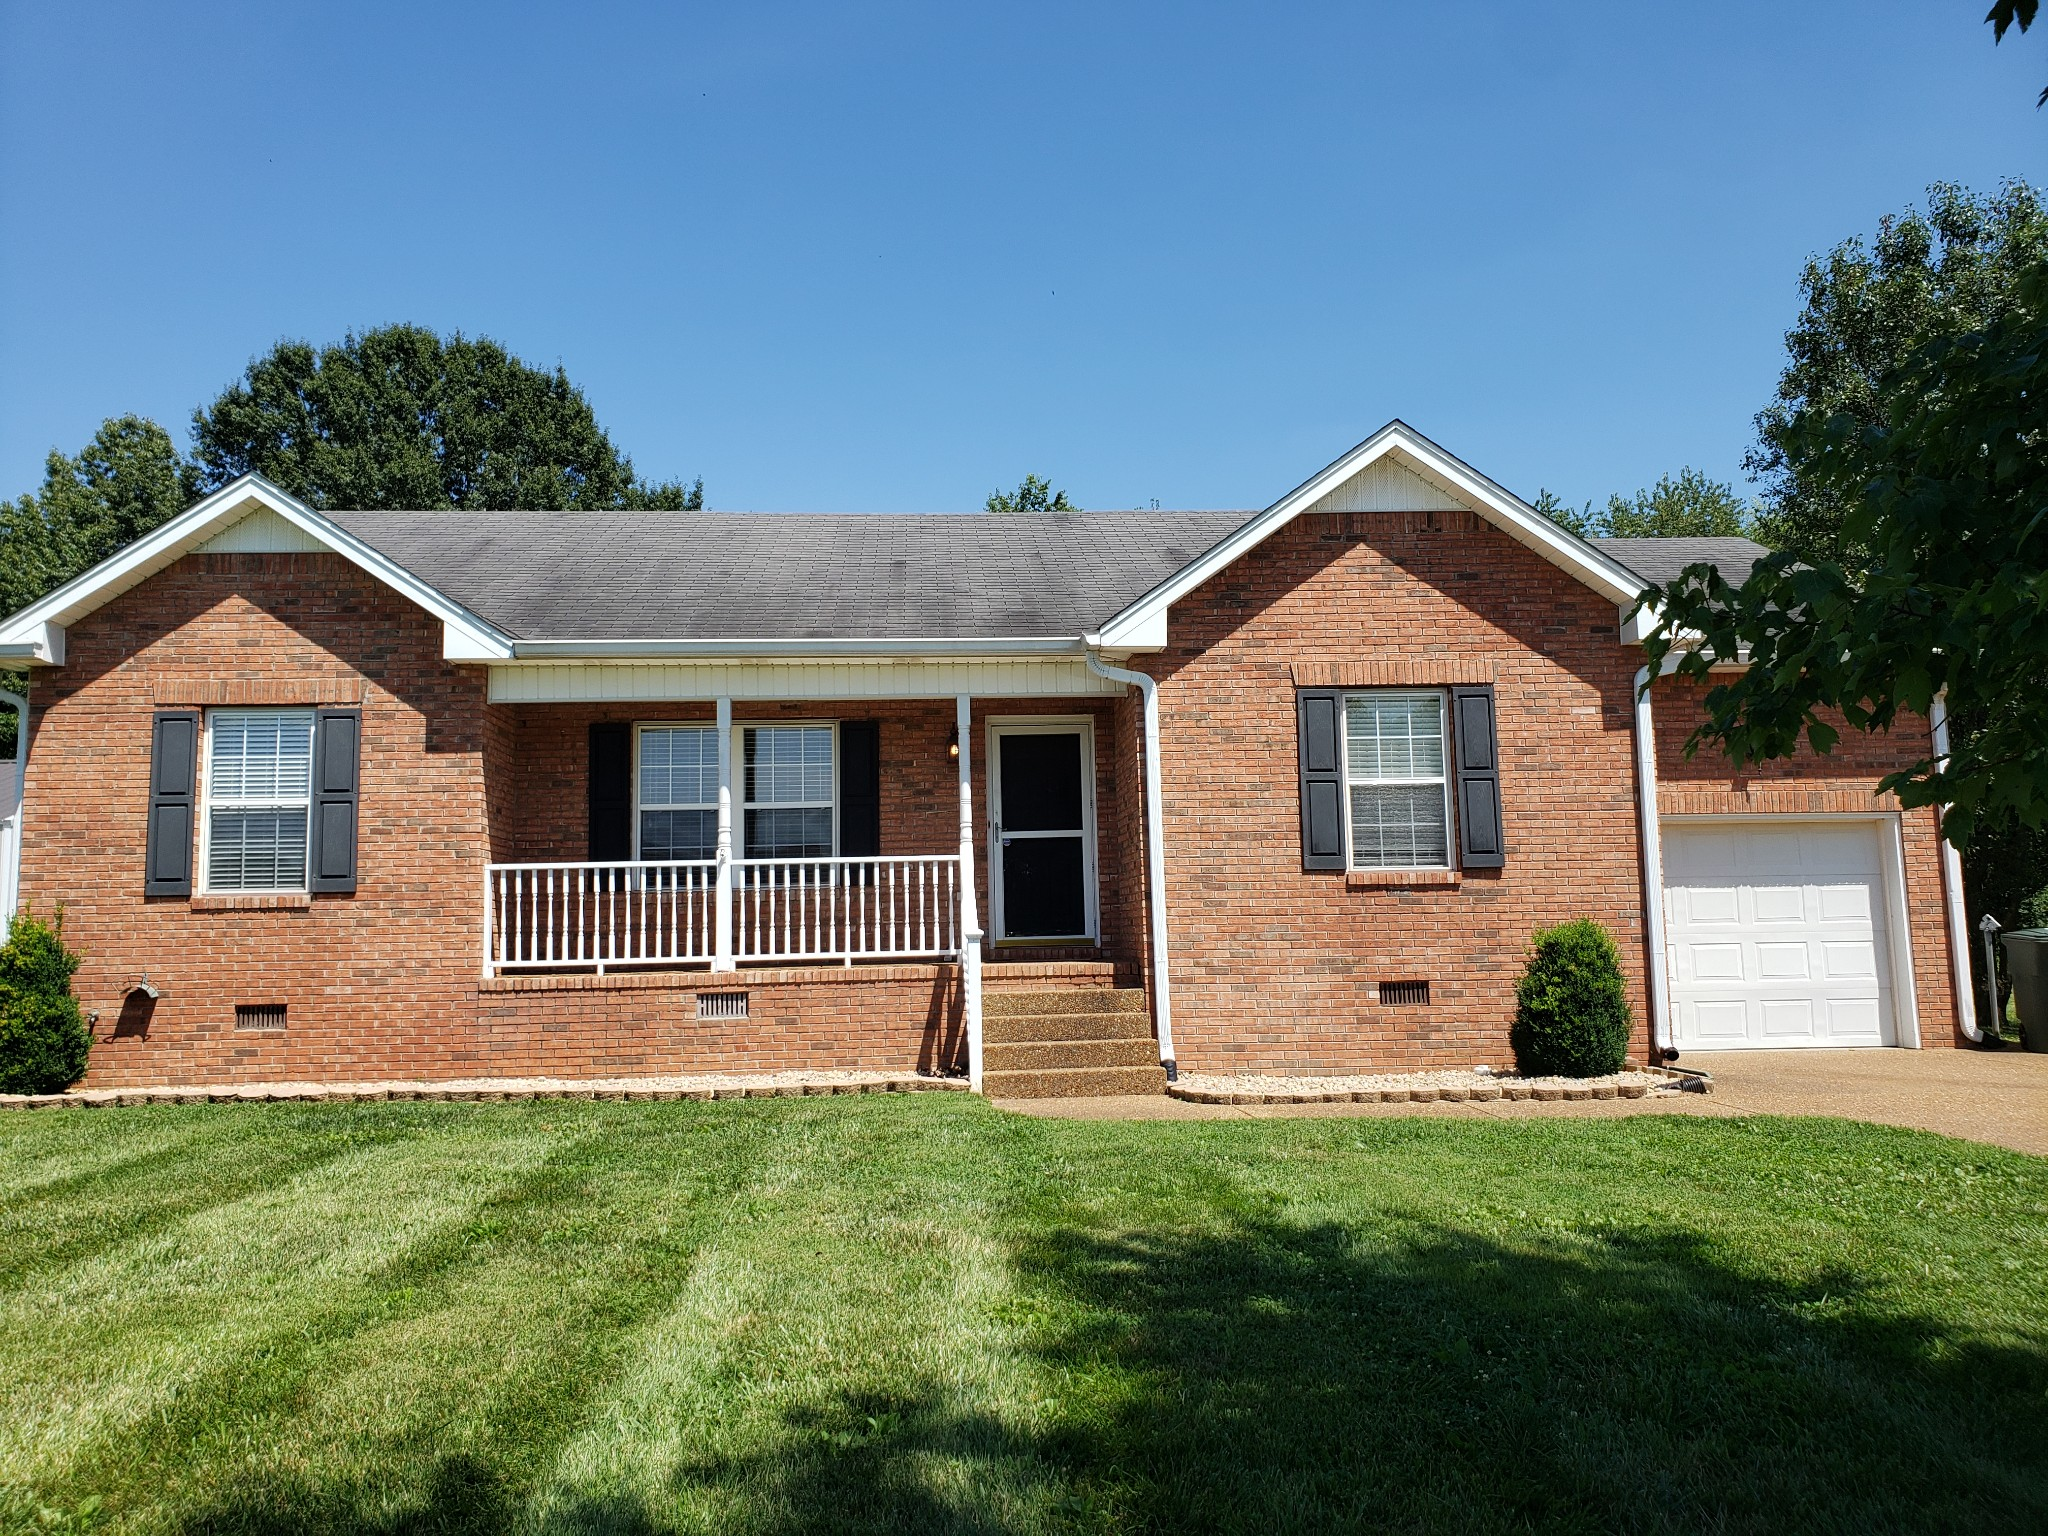 Beautiful 3 BR/2 BA Home With Large Fenced Back Yard!  138 Cody Ct., Portland, TN.  37148